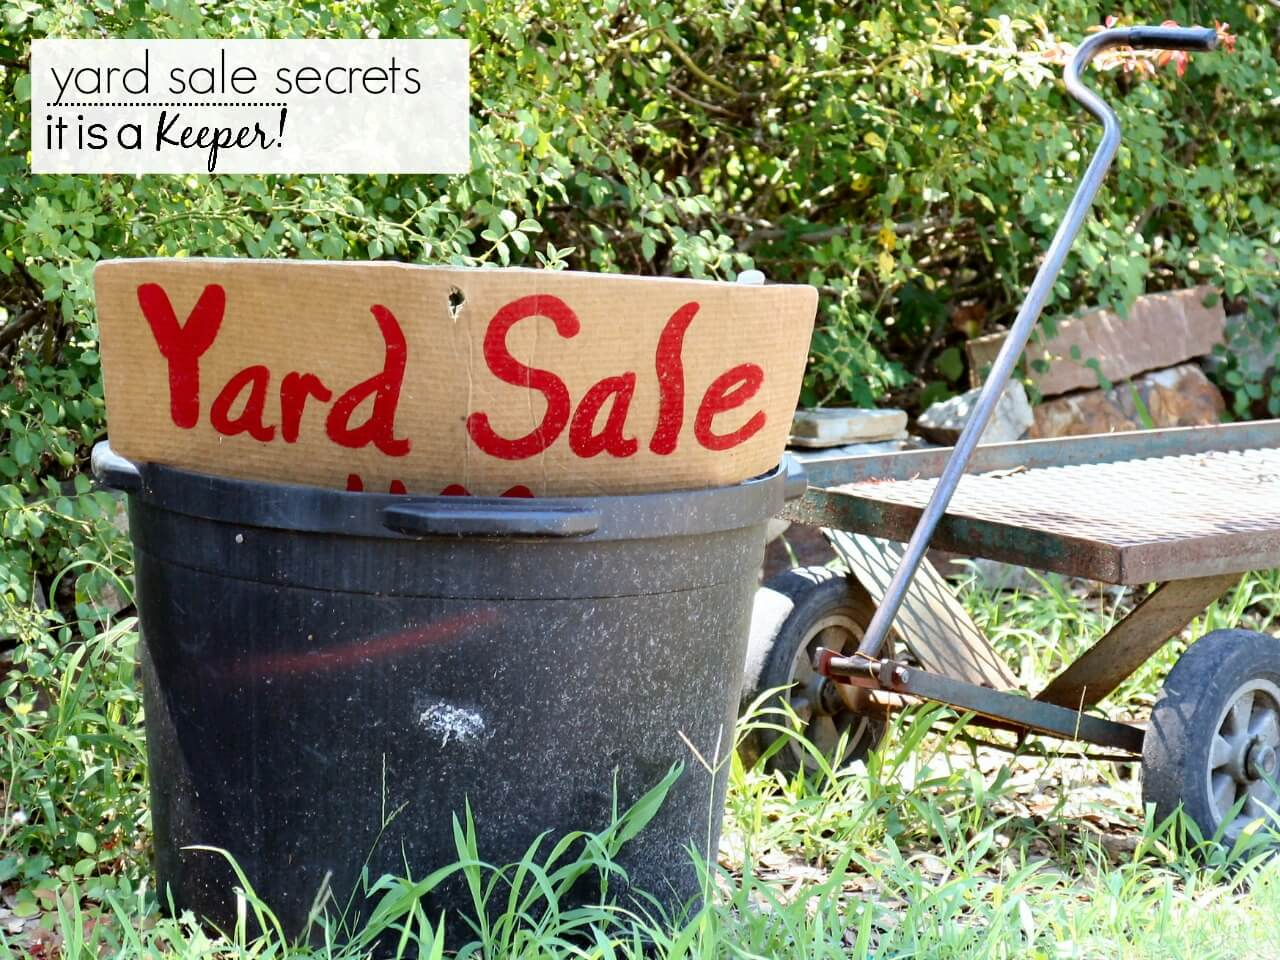 Tips and secrets for holding a great yard or garage sale